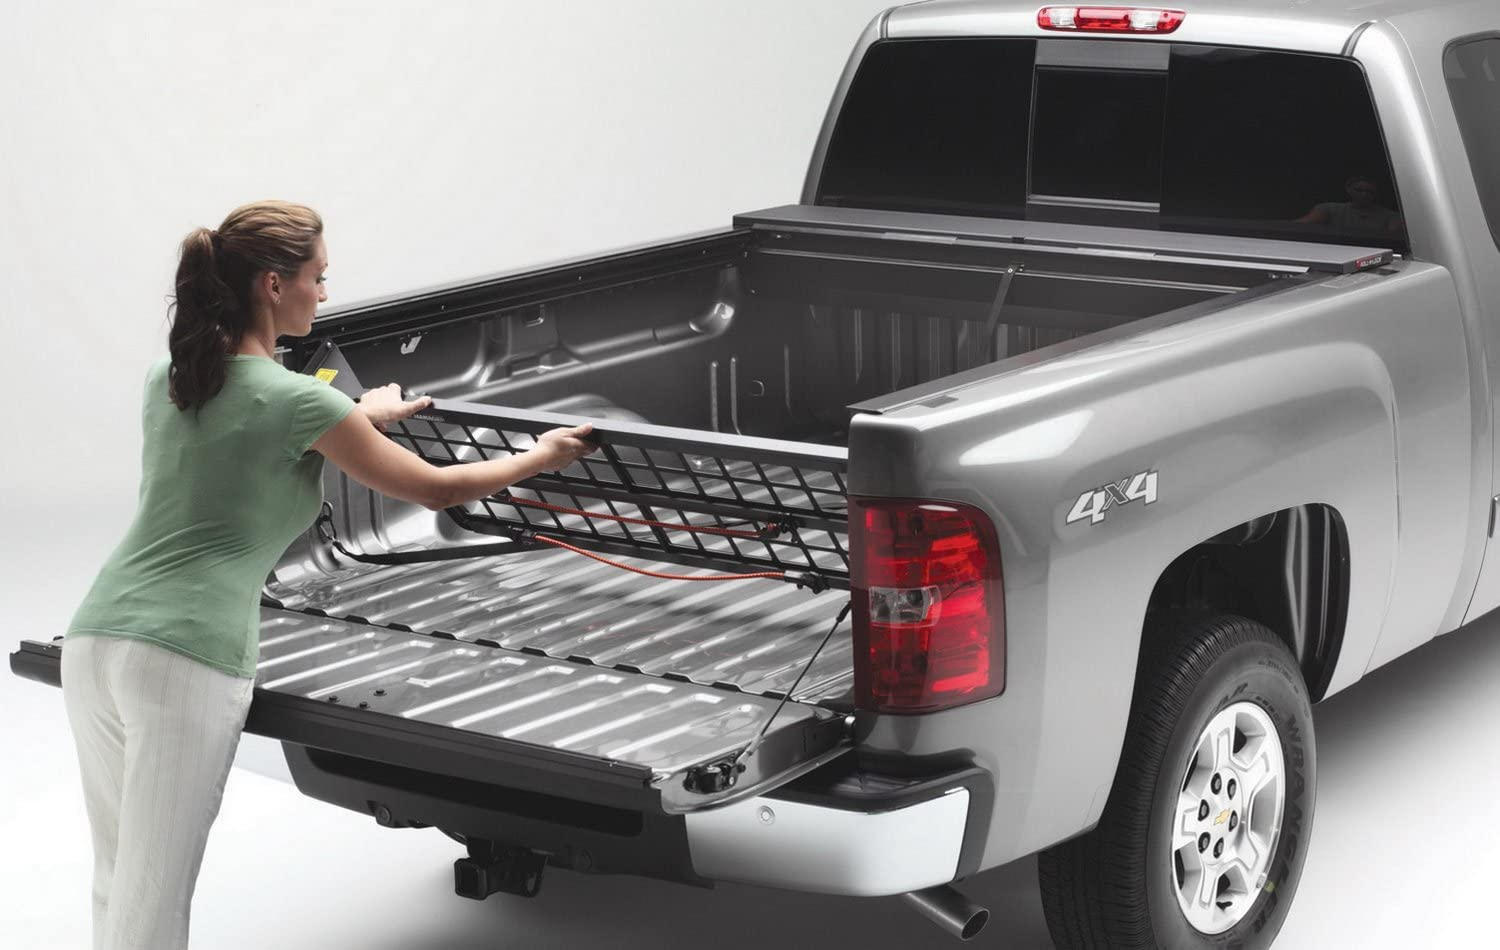 Roll-N-Lock CM447 Cargo Manager Rolling Truck Bed Divider for Dodge RAM 1500 XSB 2009